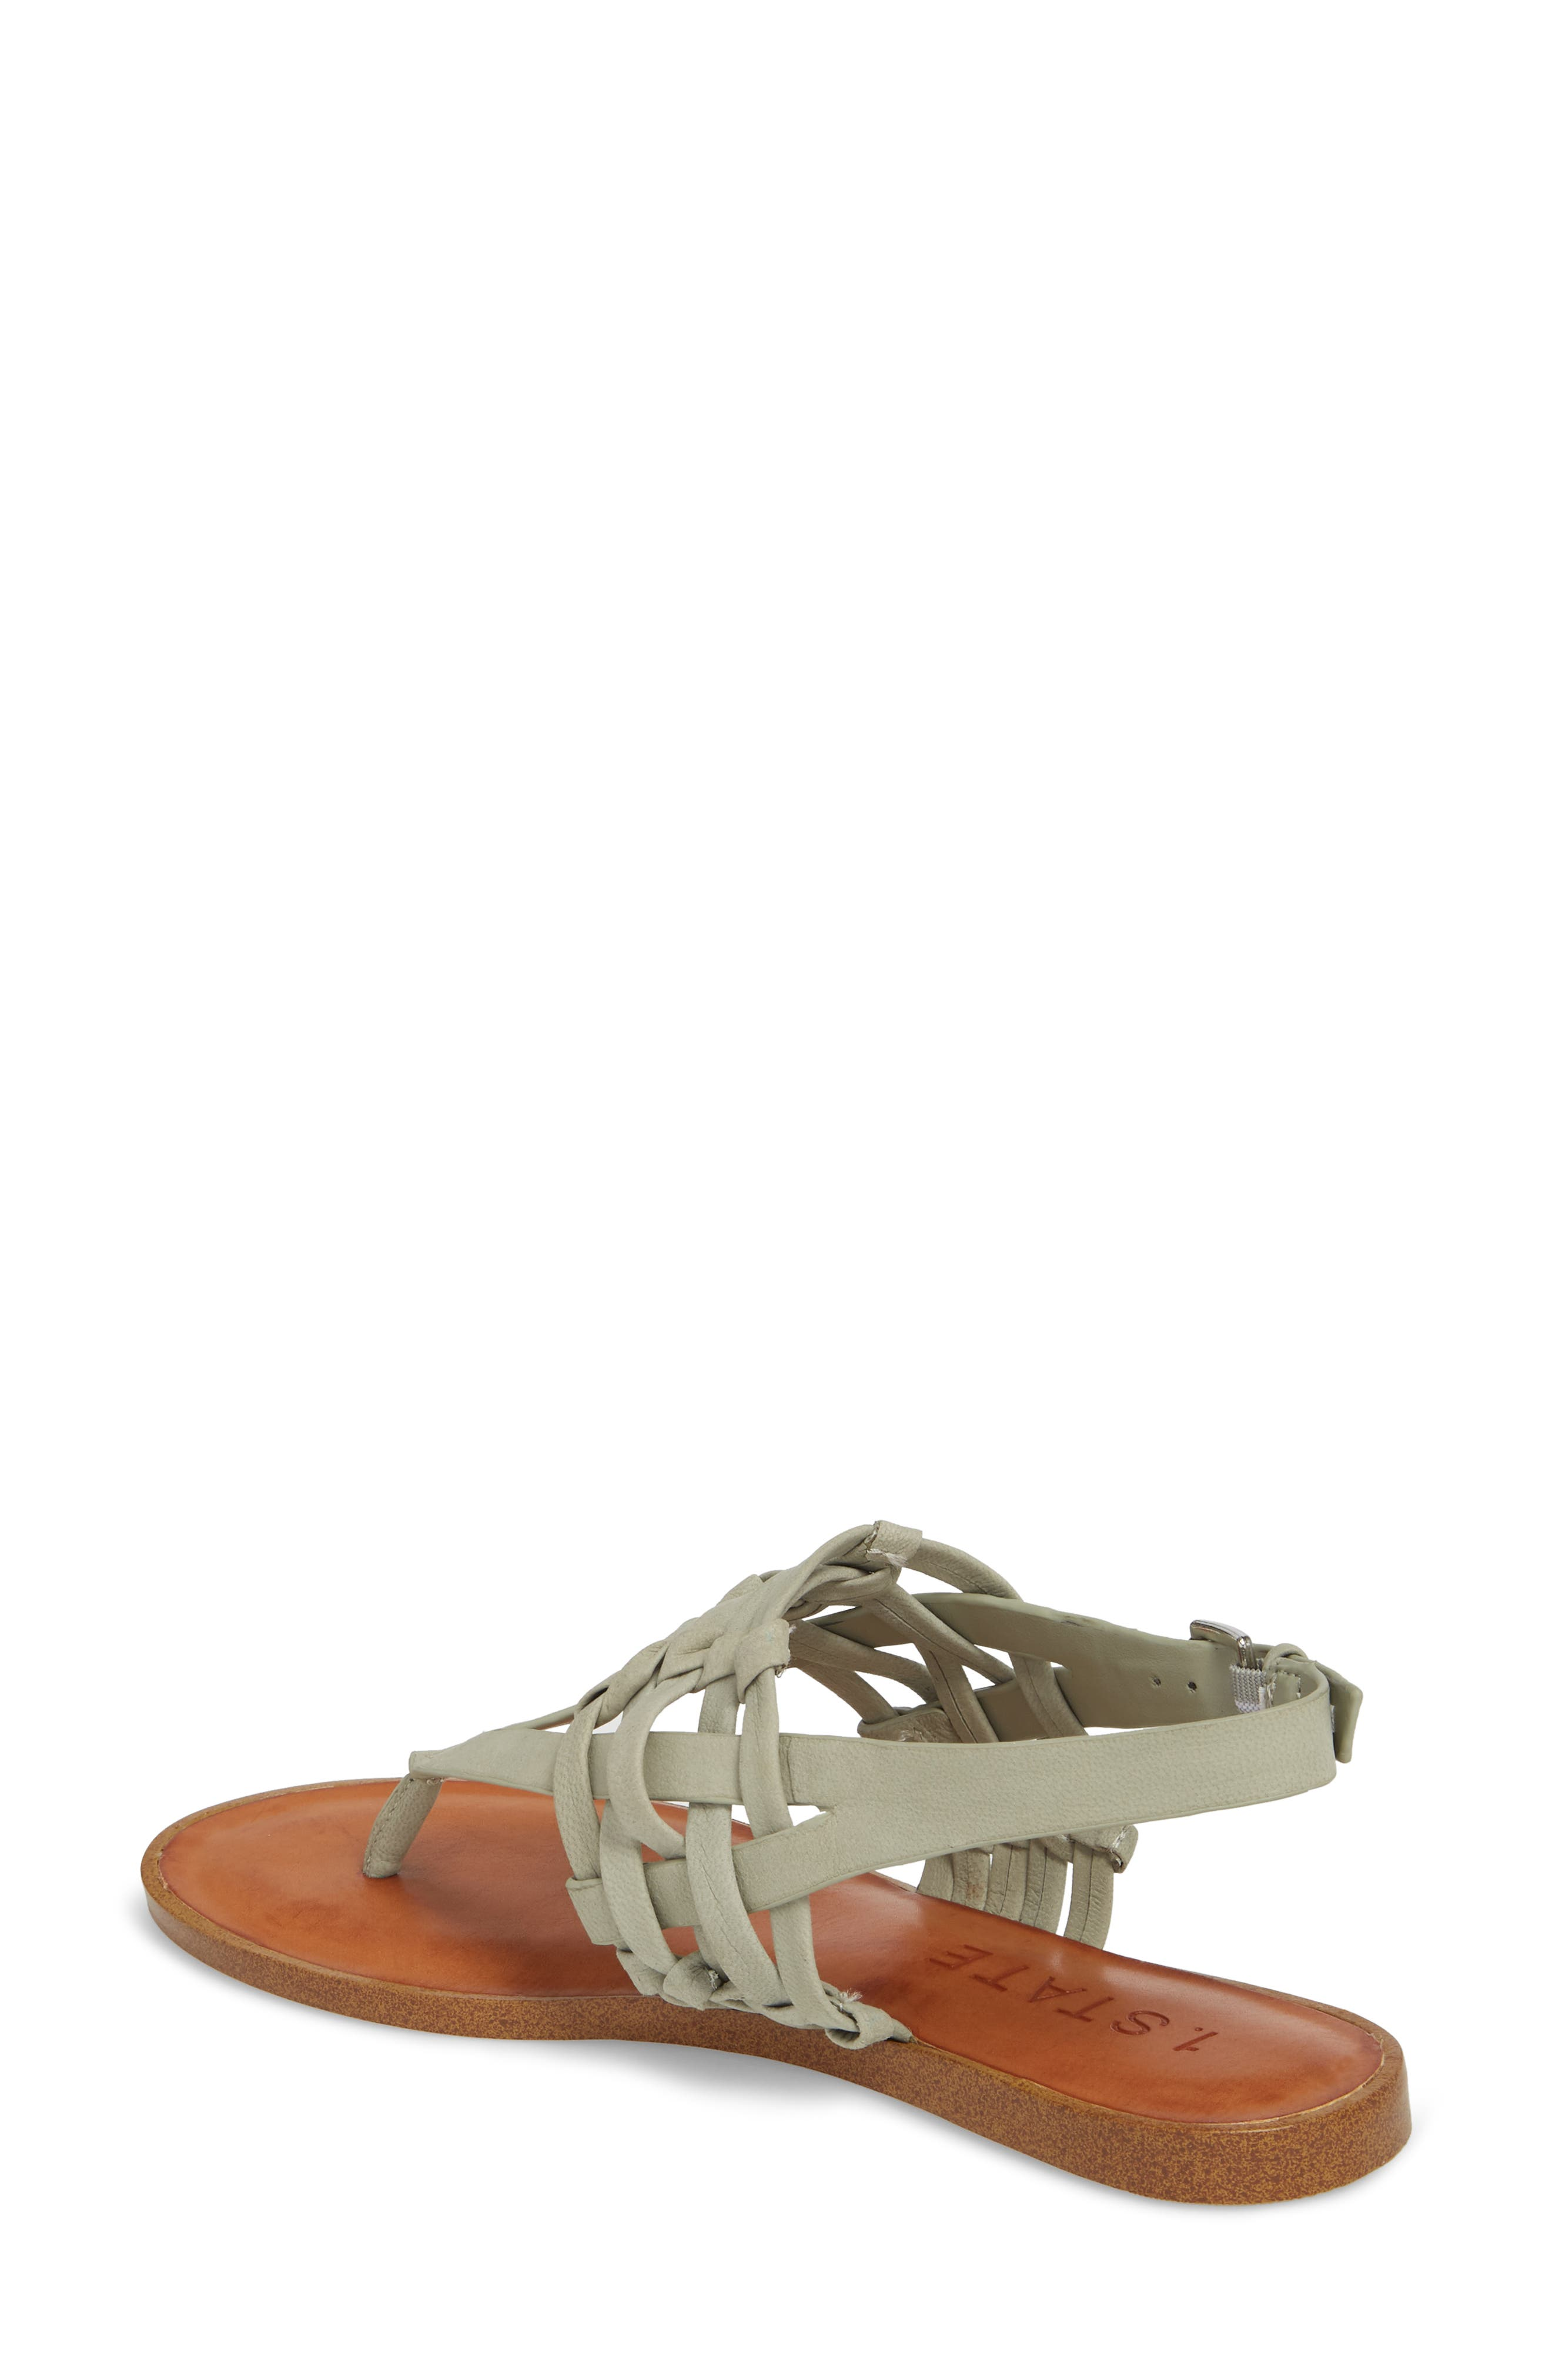 Lenn Sandal,                             Alternate thumbnail 2, color,                             Nettle Nubuck Leather